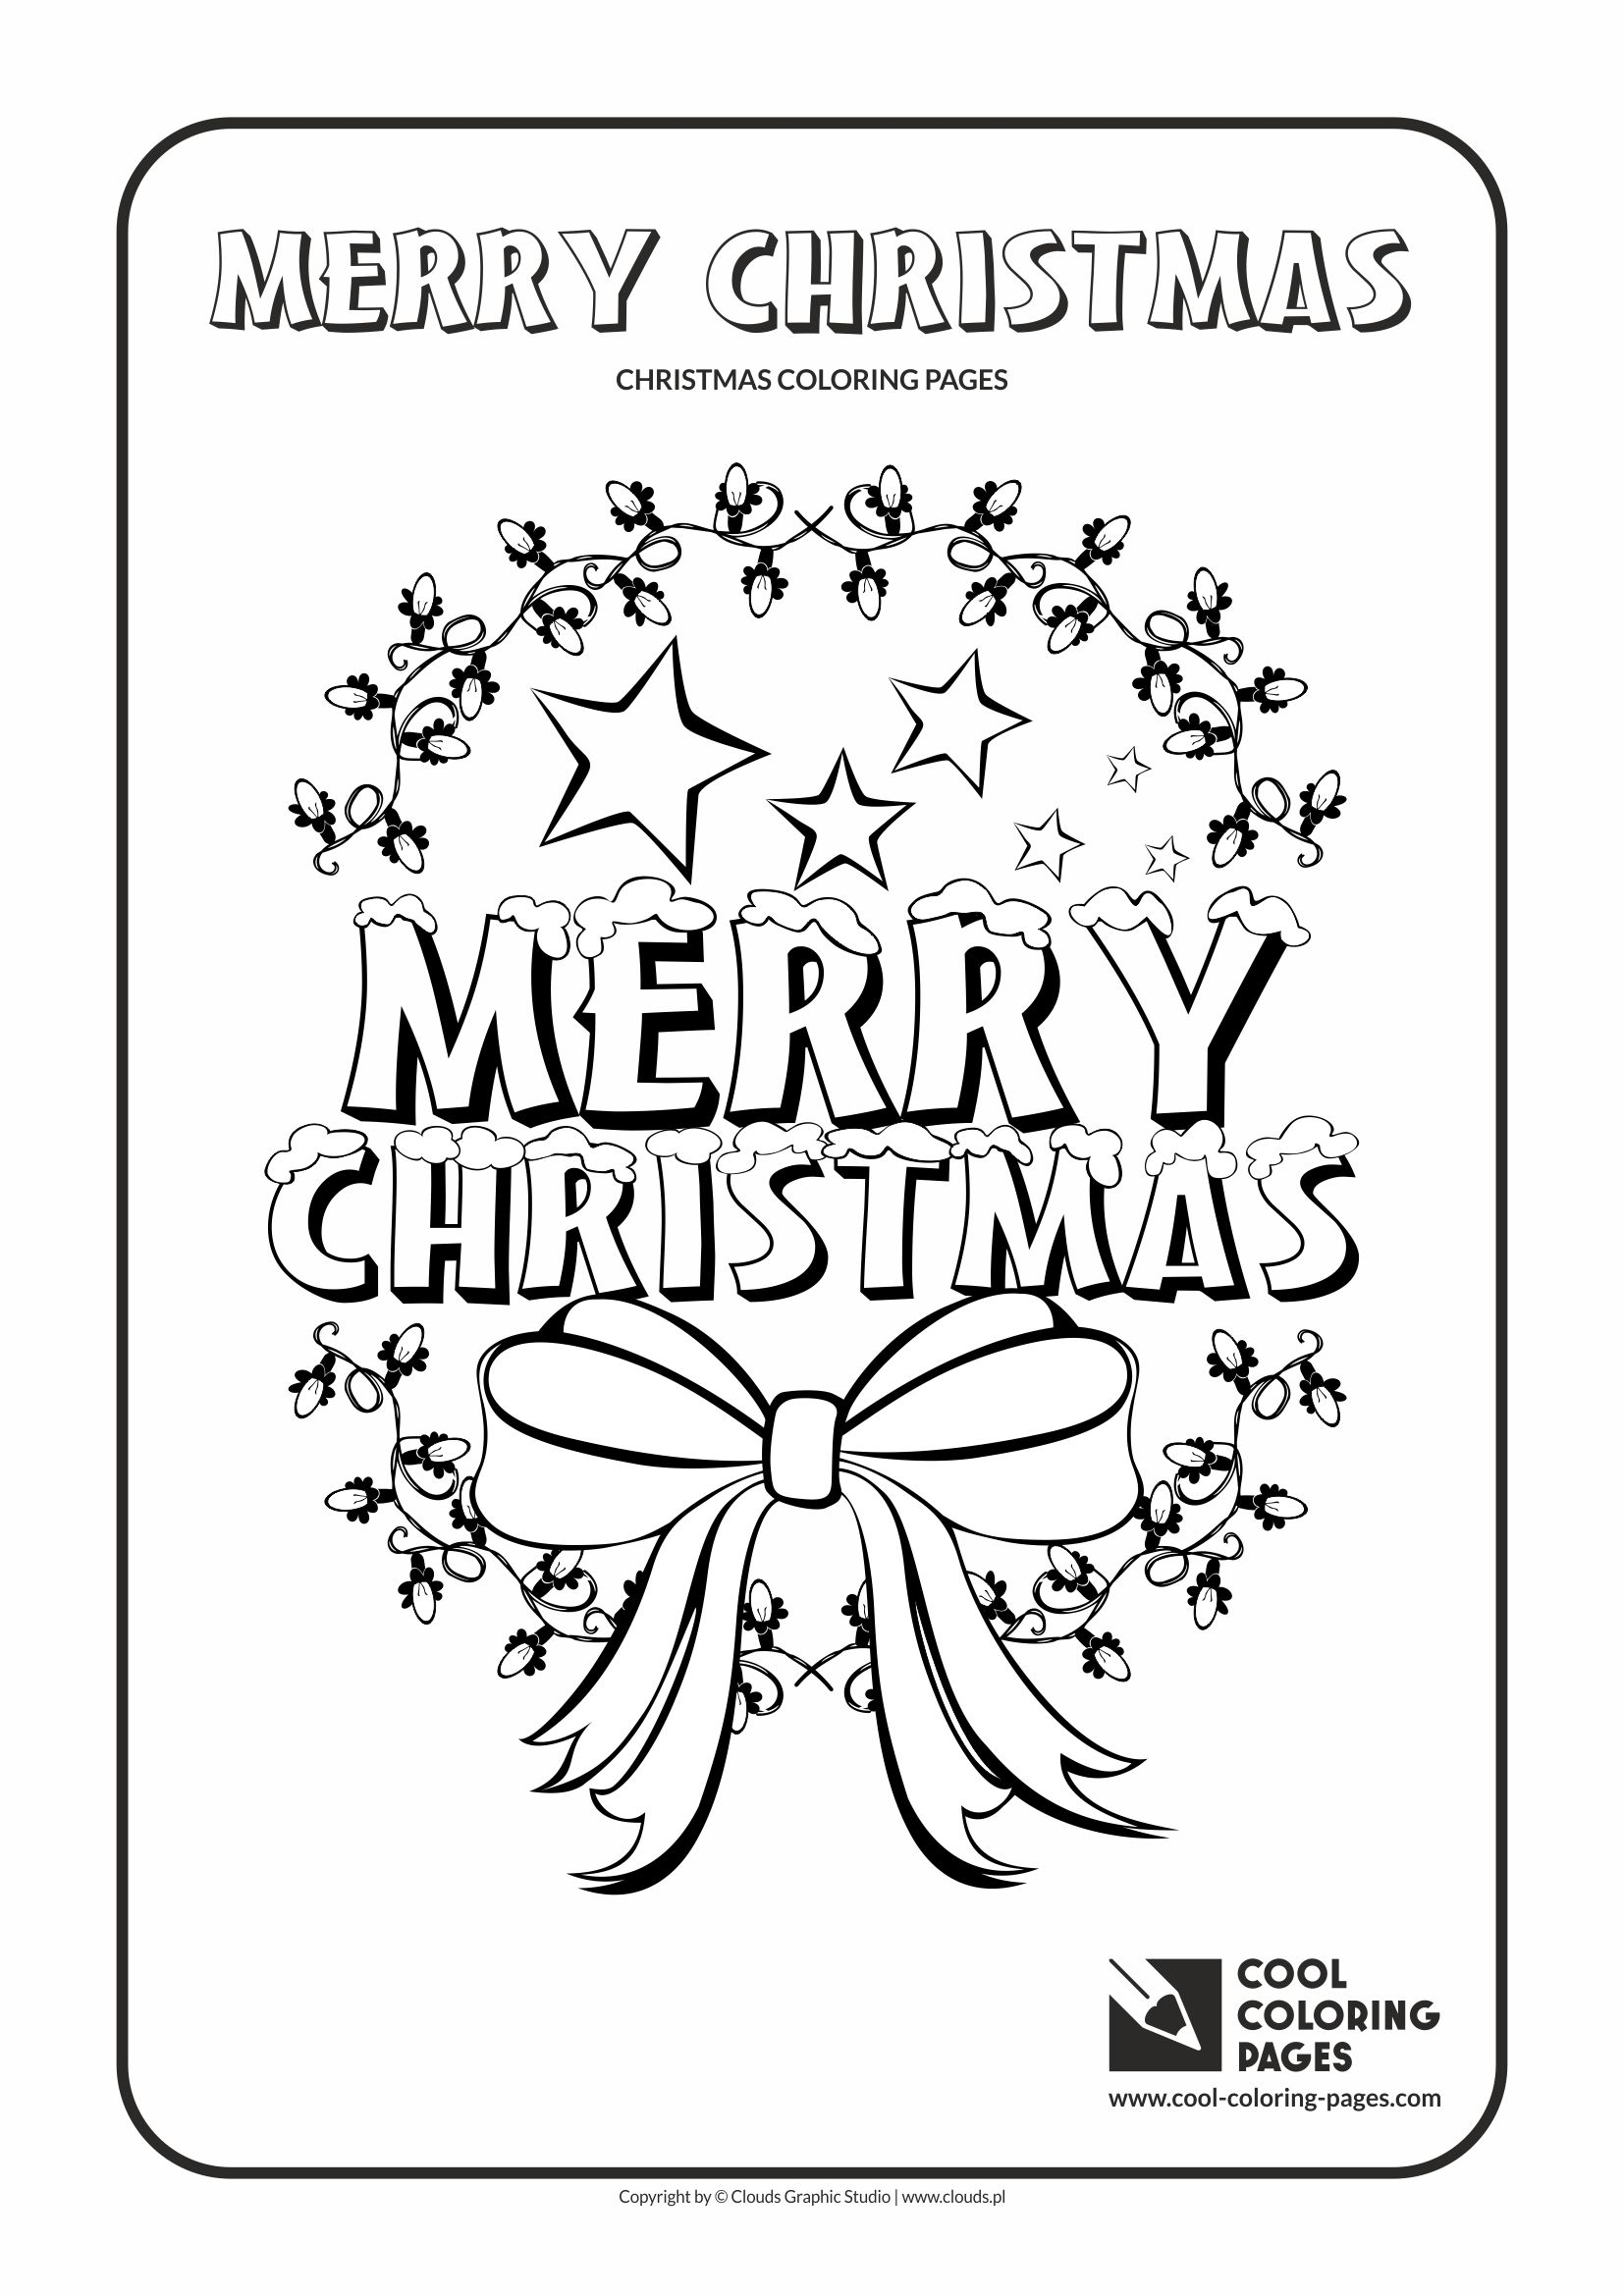 cool coloring pages holidays merry christmas no 2 coloring page with merry christmas